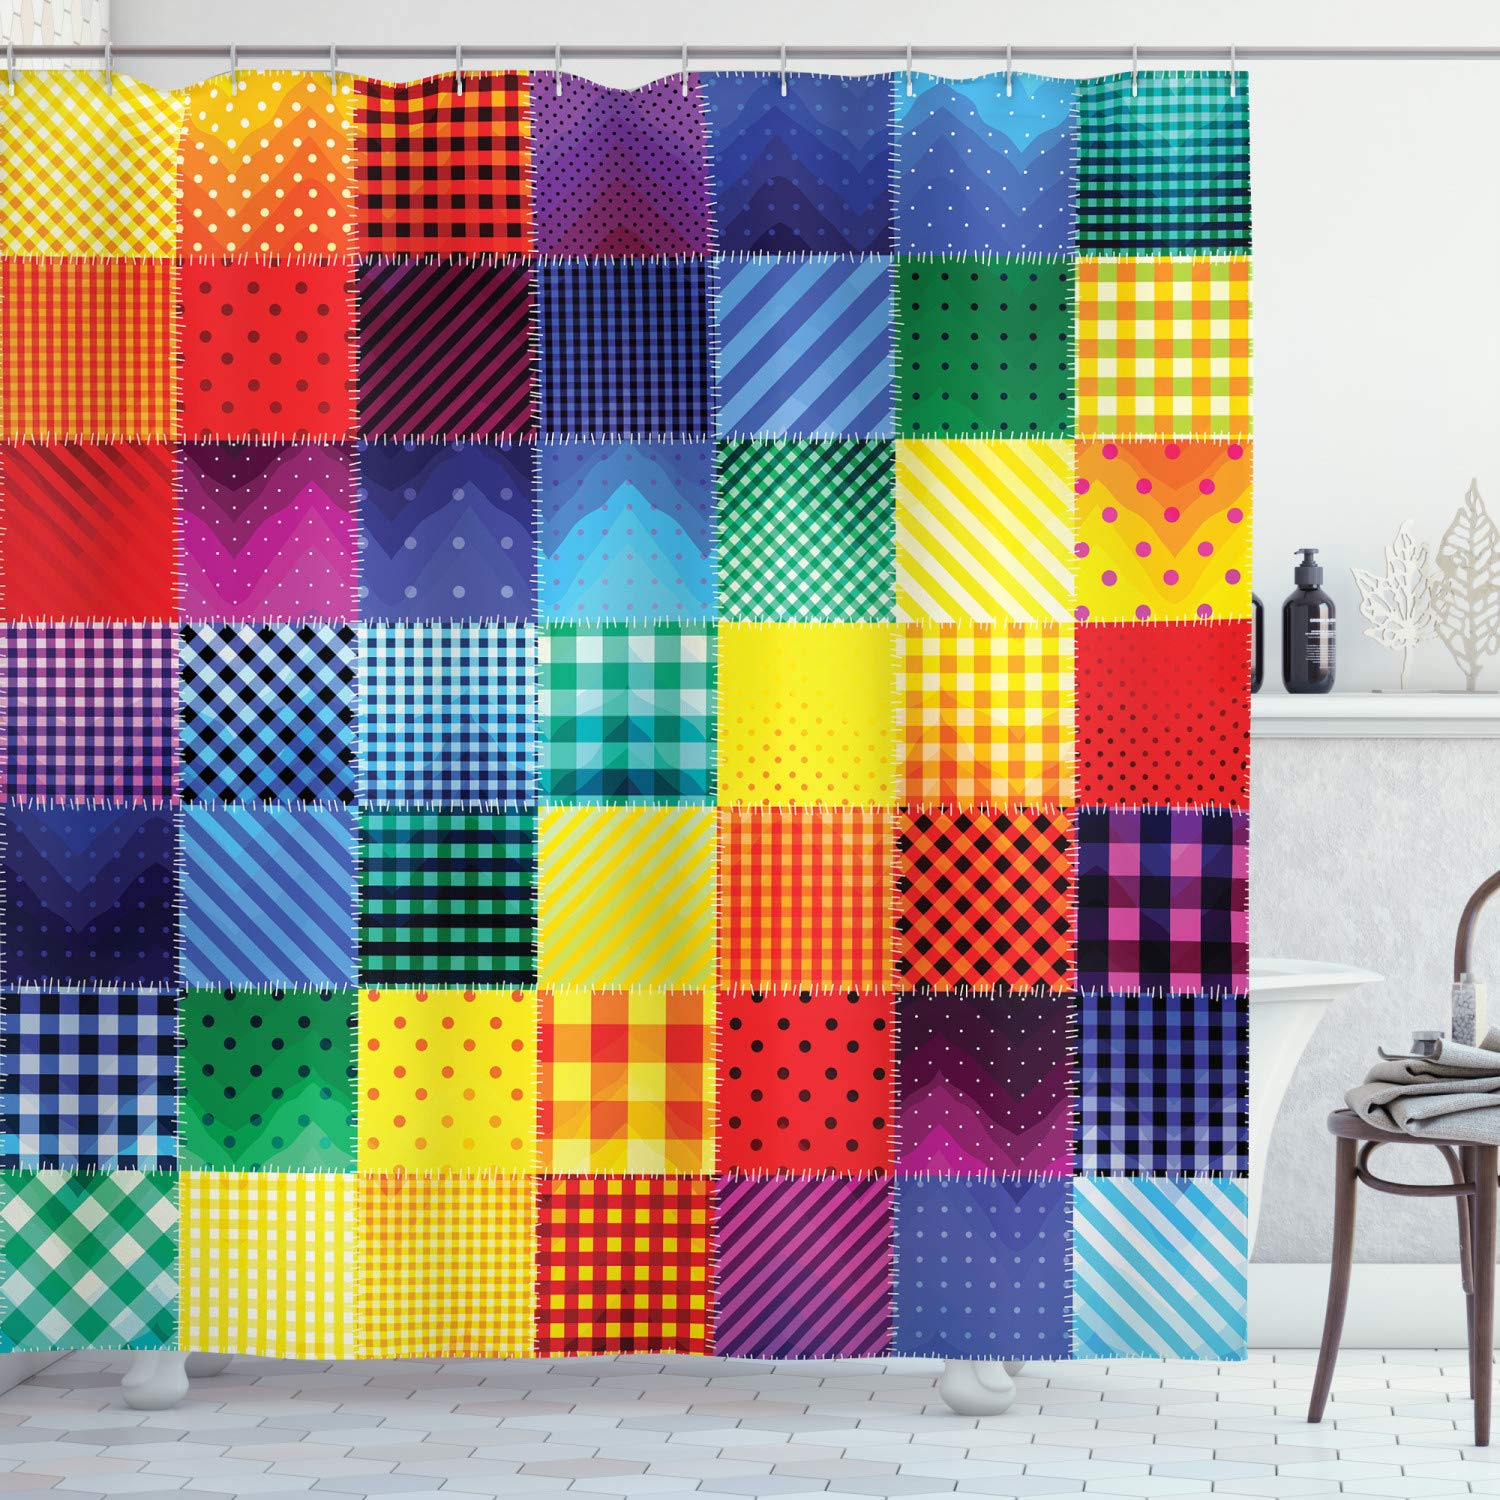 """Ambesonne Abstract Shower Curtain, Rainbow Colored Square Shaped Diverse Patterns with Diagonal Forms Geometric, Cloth Fabric Bathroom Decor Set with Hooks, 75"""" Long, Multicolor"""